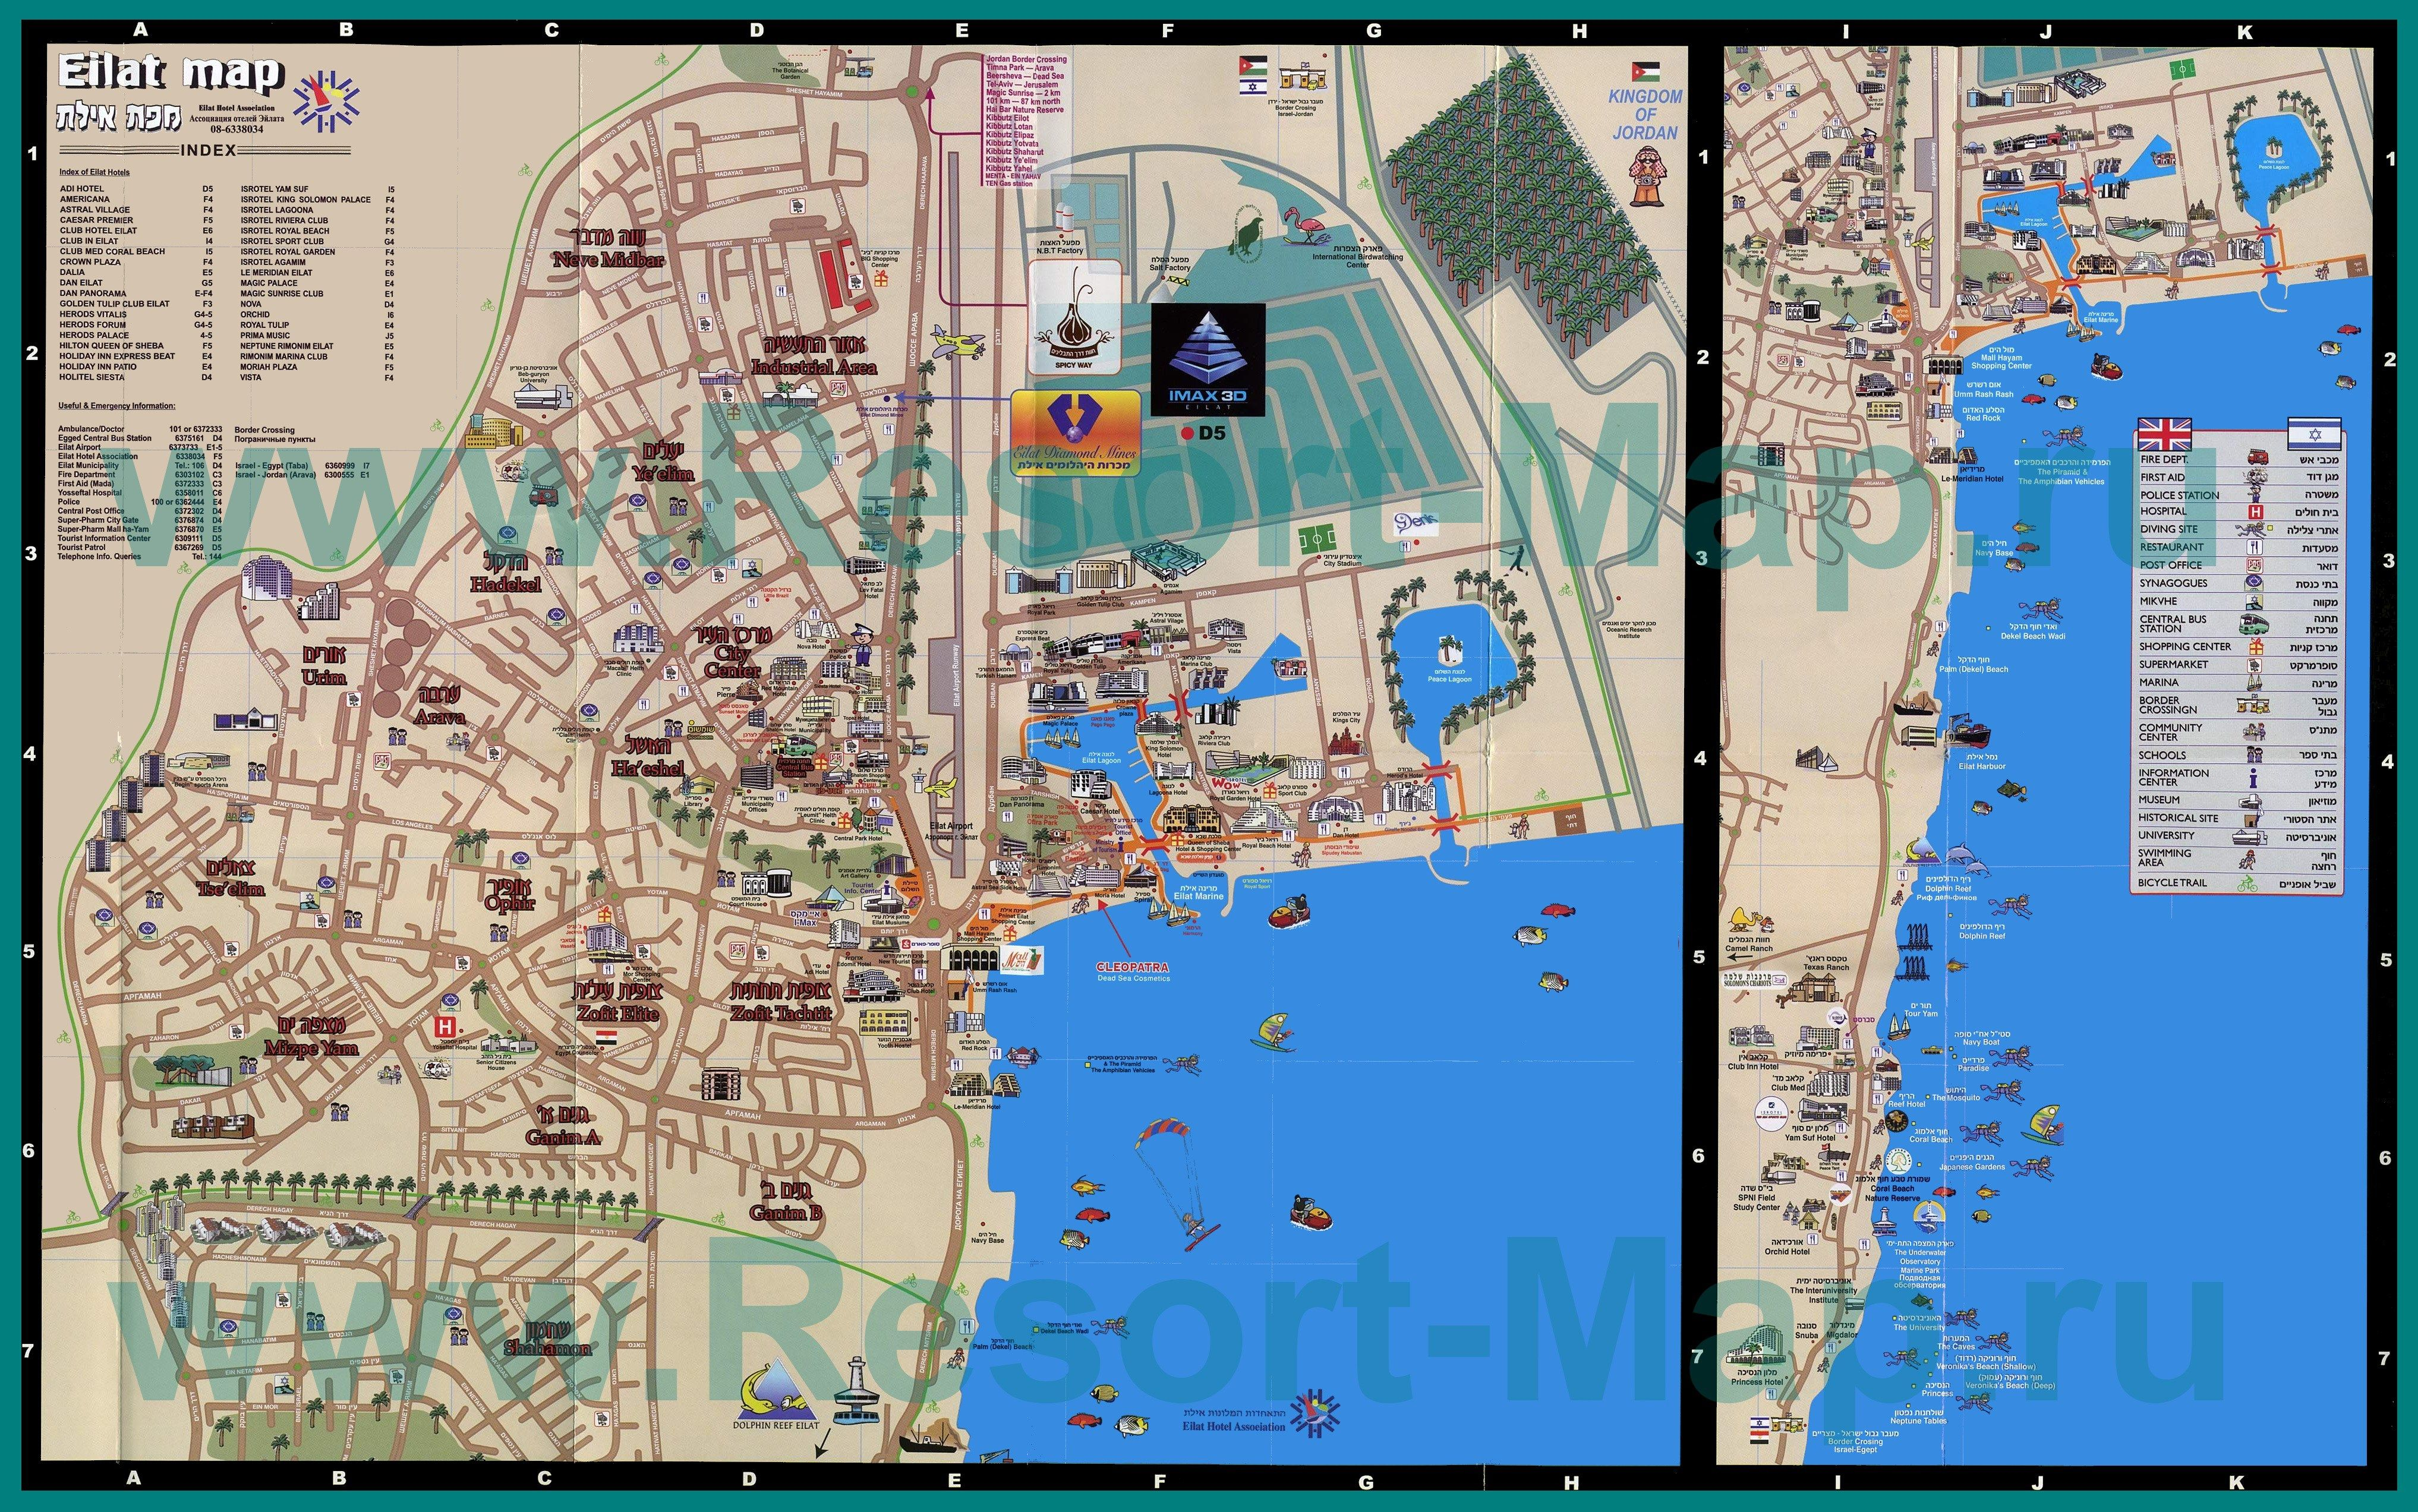 Maps for Eilat HeEn Touring Guides in Israel Pinterest